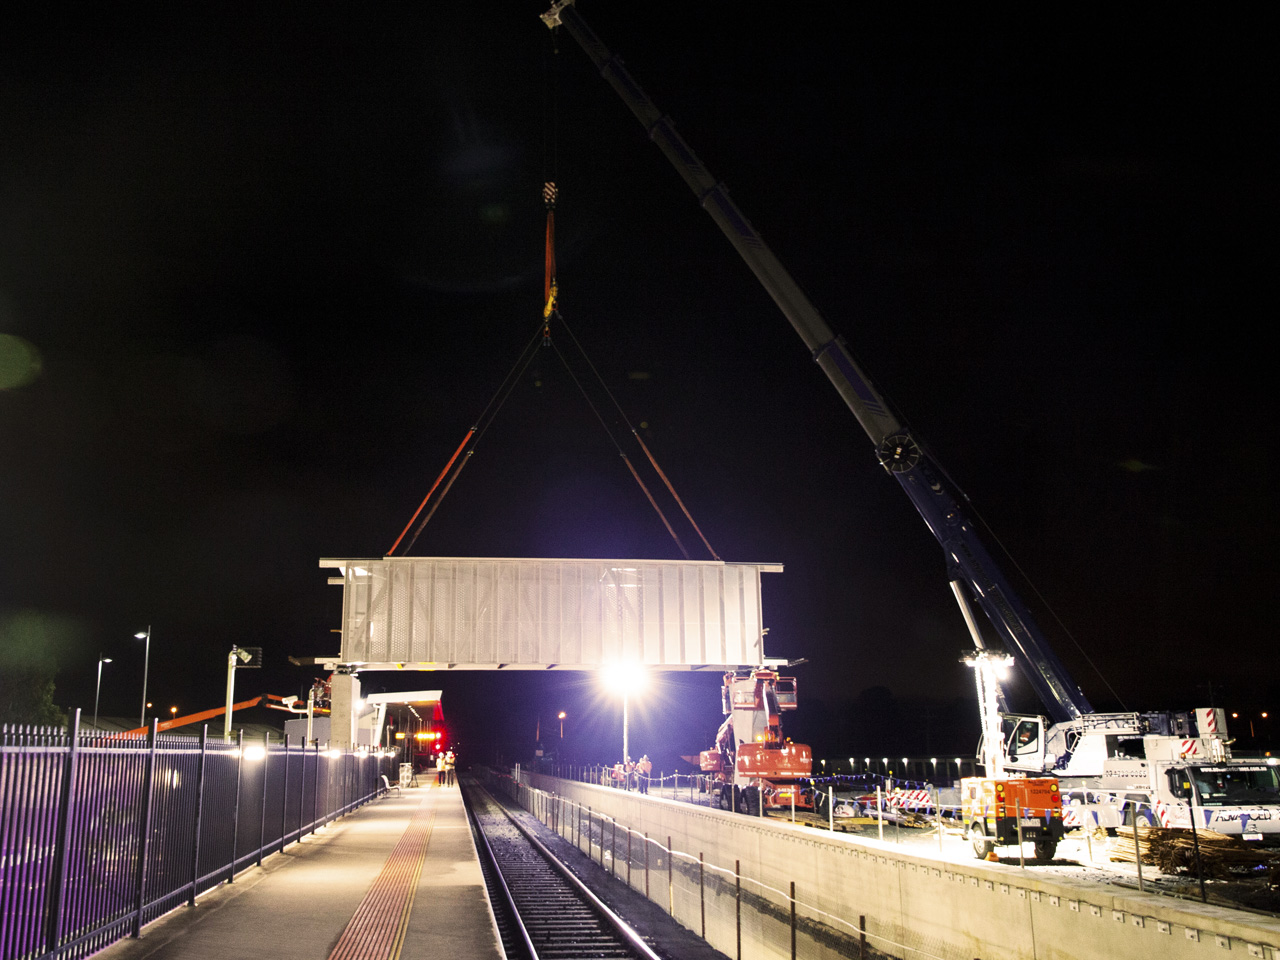 Station overpass being lifted into position at night